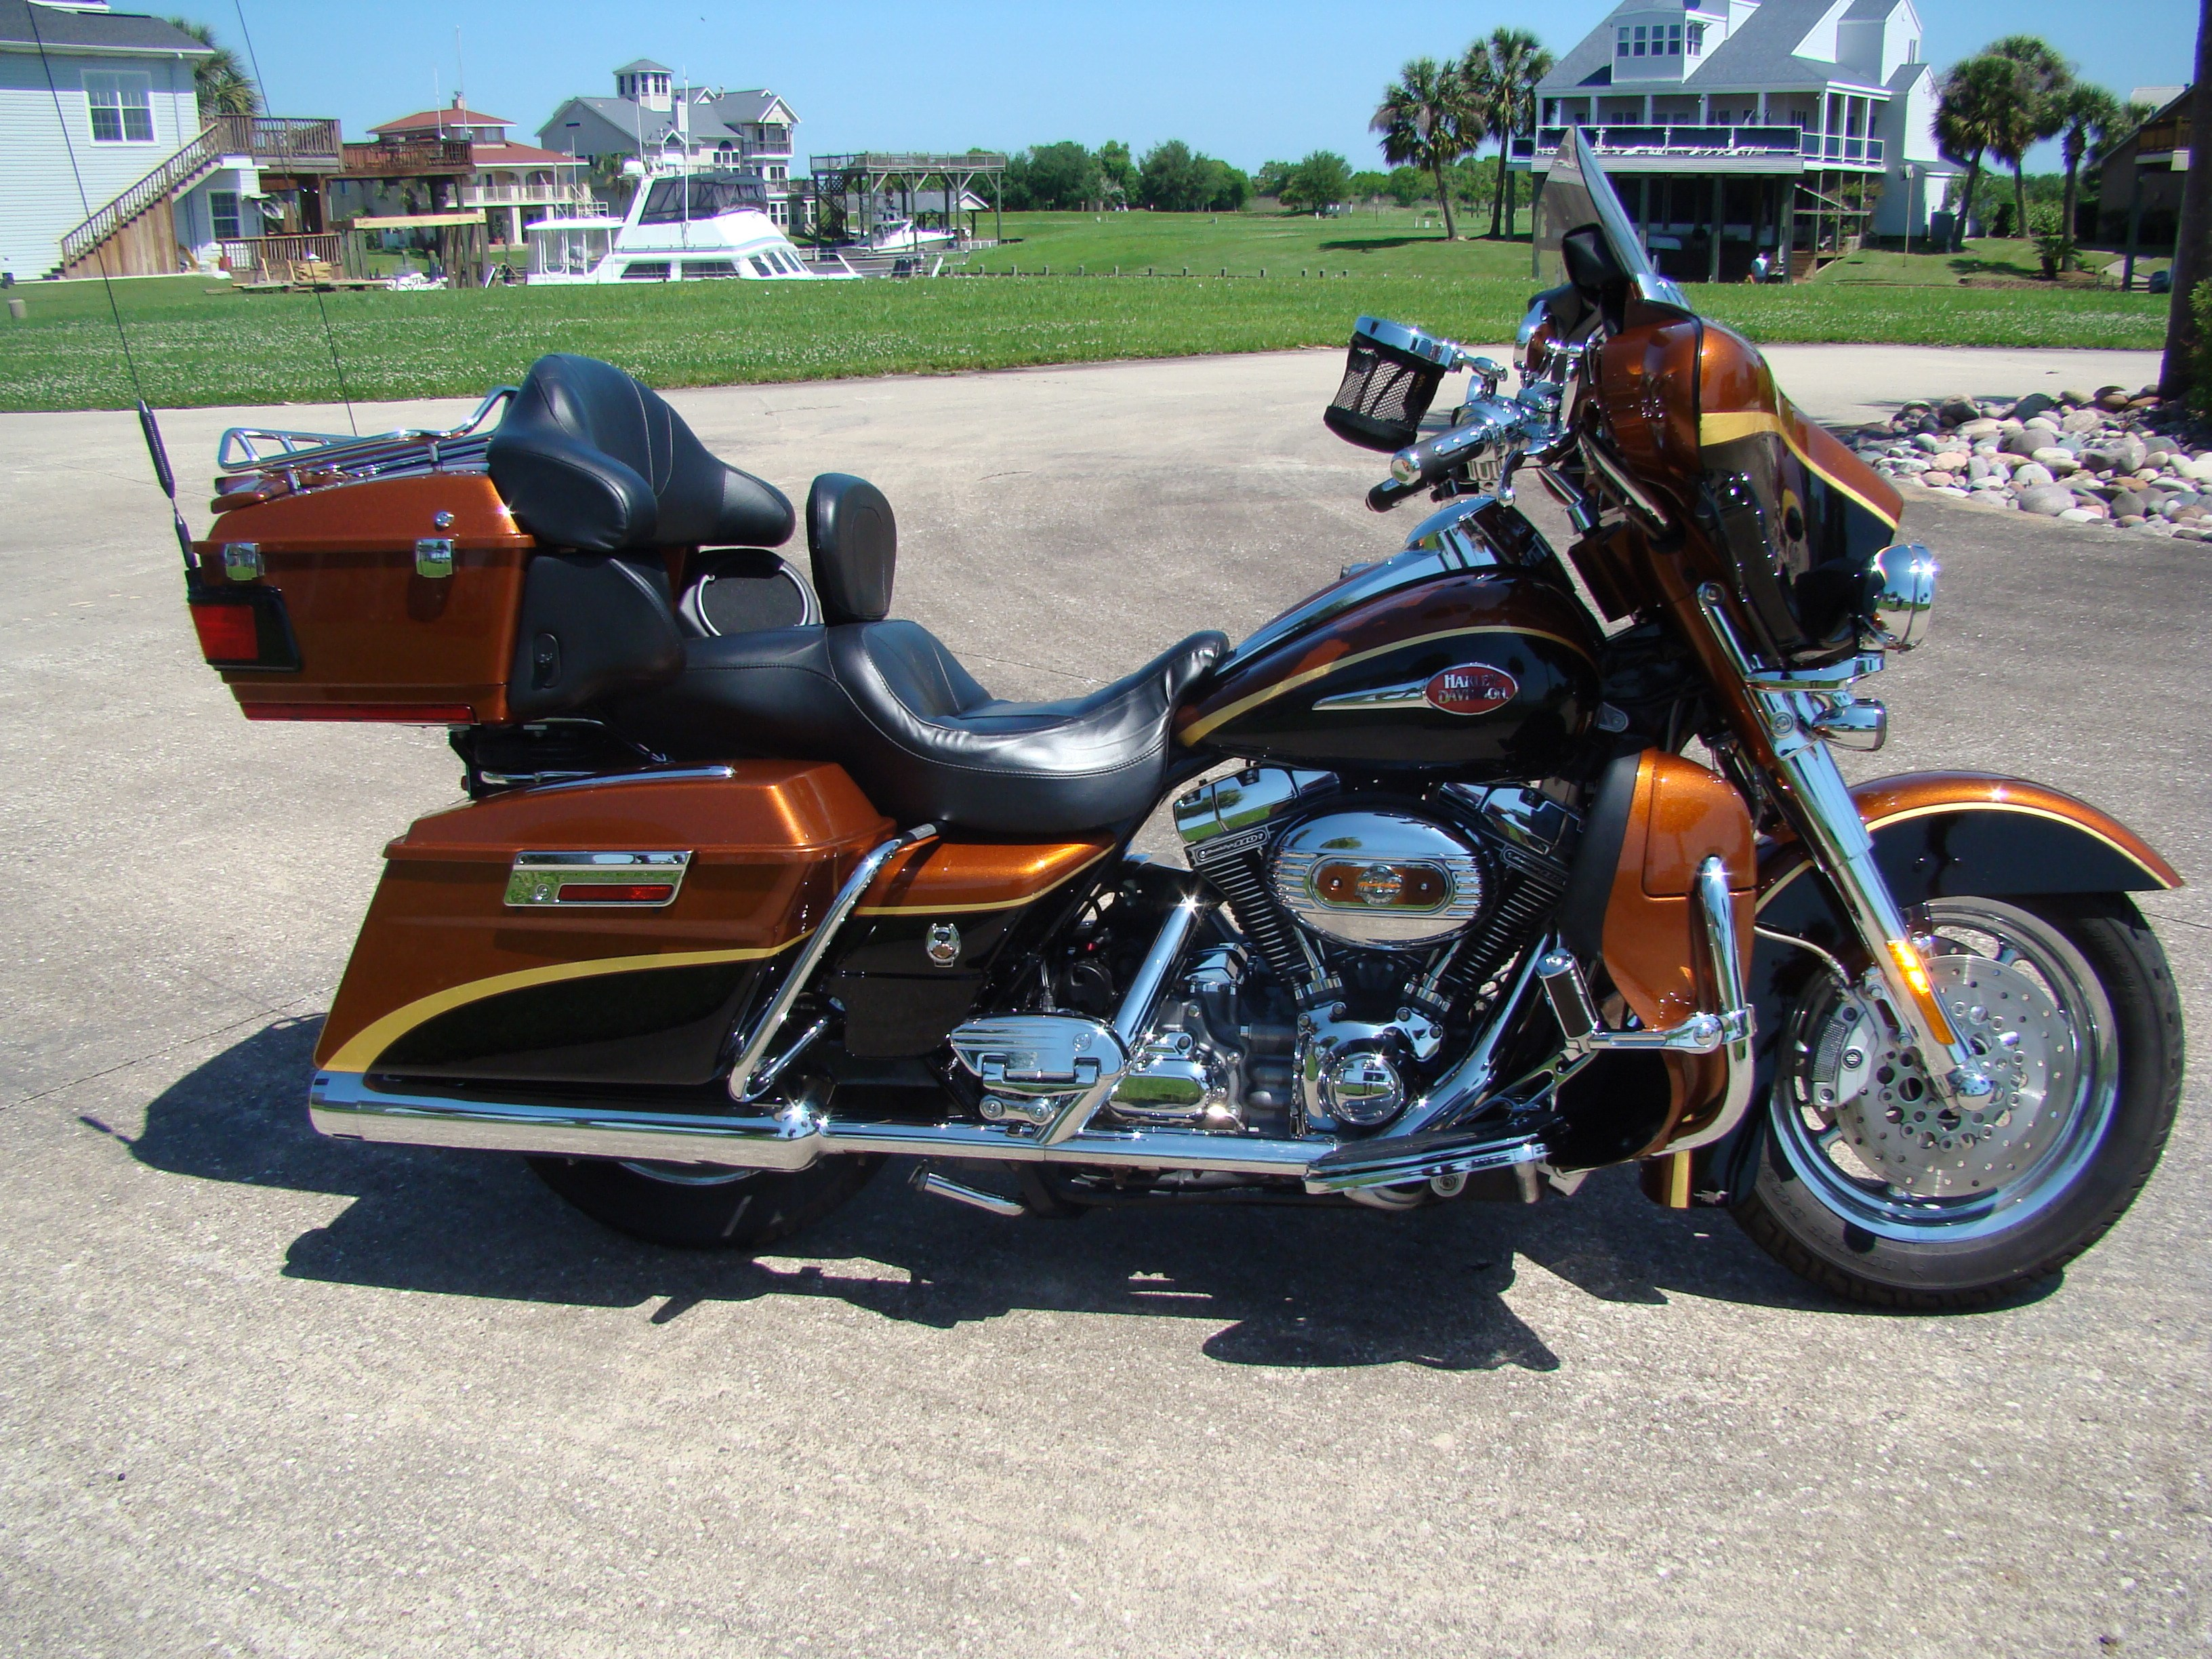 2017 Wide Glide For Sale Texas >> All New & Used Harley-Davidson® Screamin Eagle Electra Glide® For Sale (72 Bikes, Page 1 ...